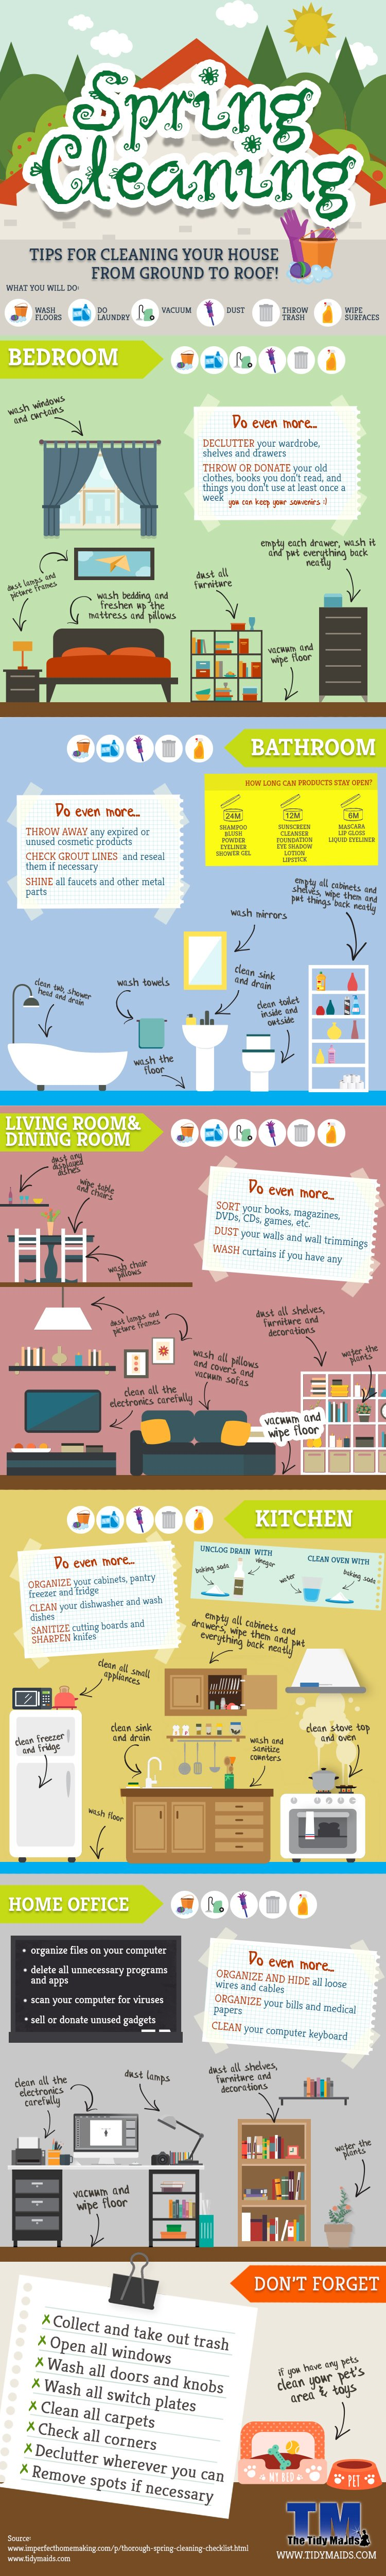 Spring cleaning tips and tricks from The Tidy Maids! https://www.thetidymaids.com/infographic-spring-cleaning-tips-and-tricks/